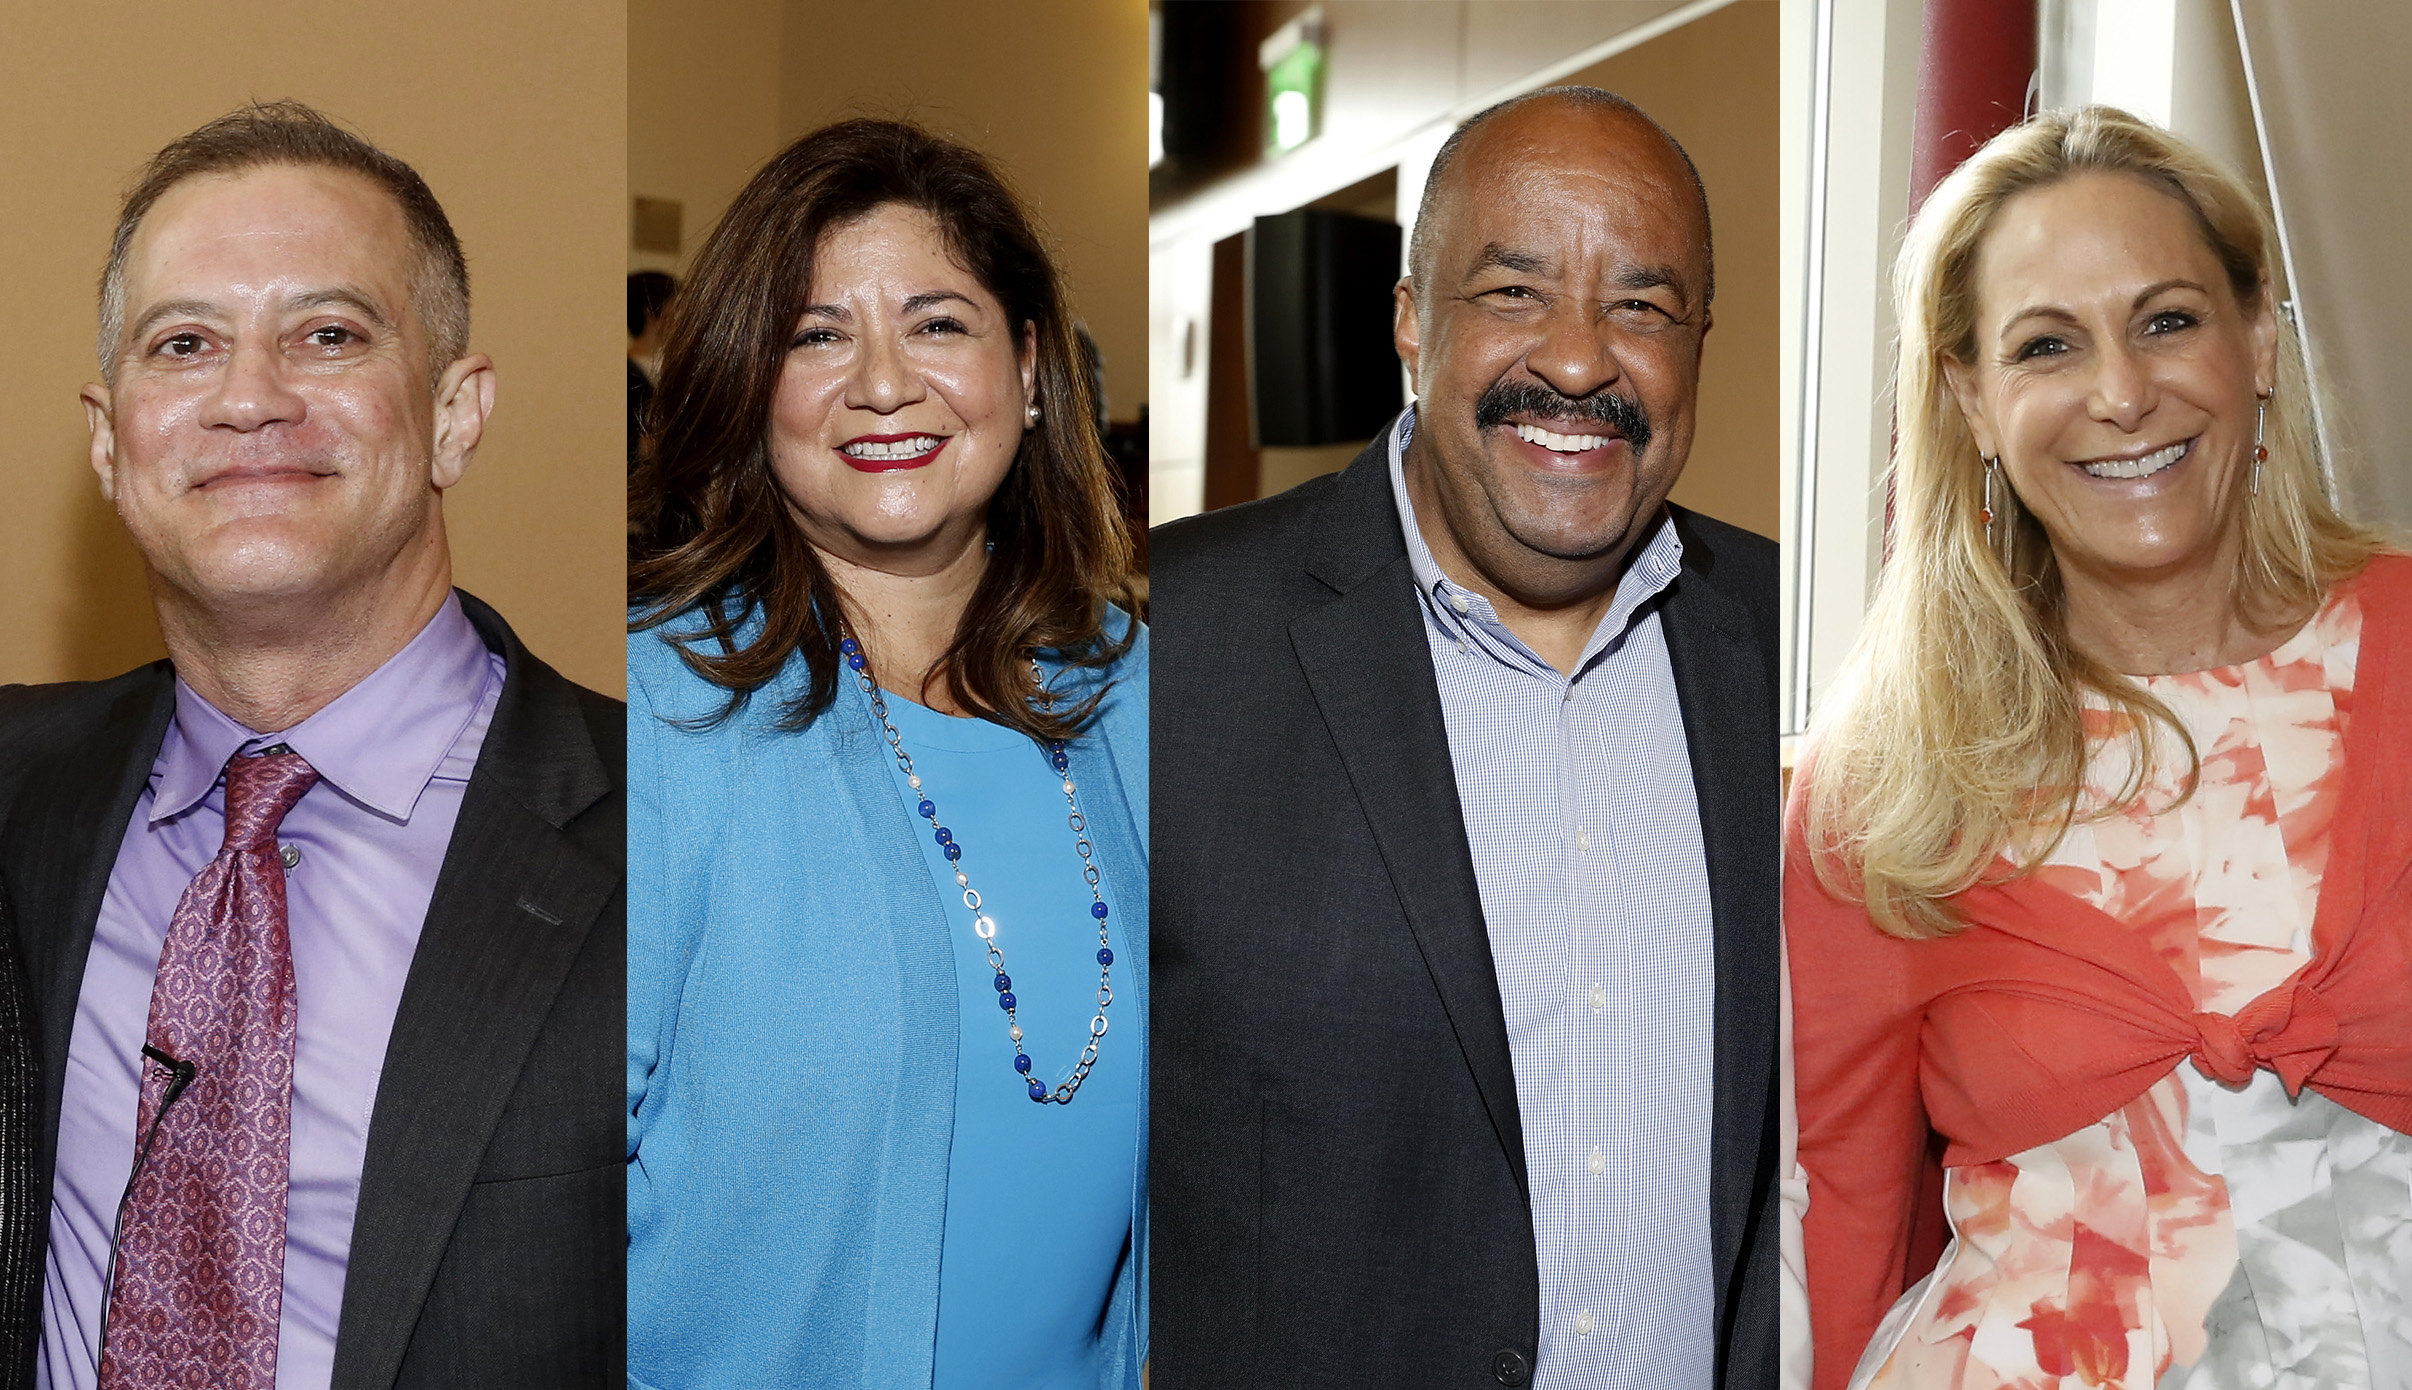 The Center reflects on Los Angeles Urban Funders, 25 years after the Civil Unrest